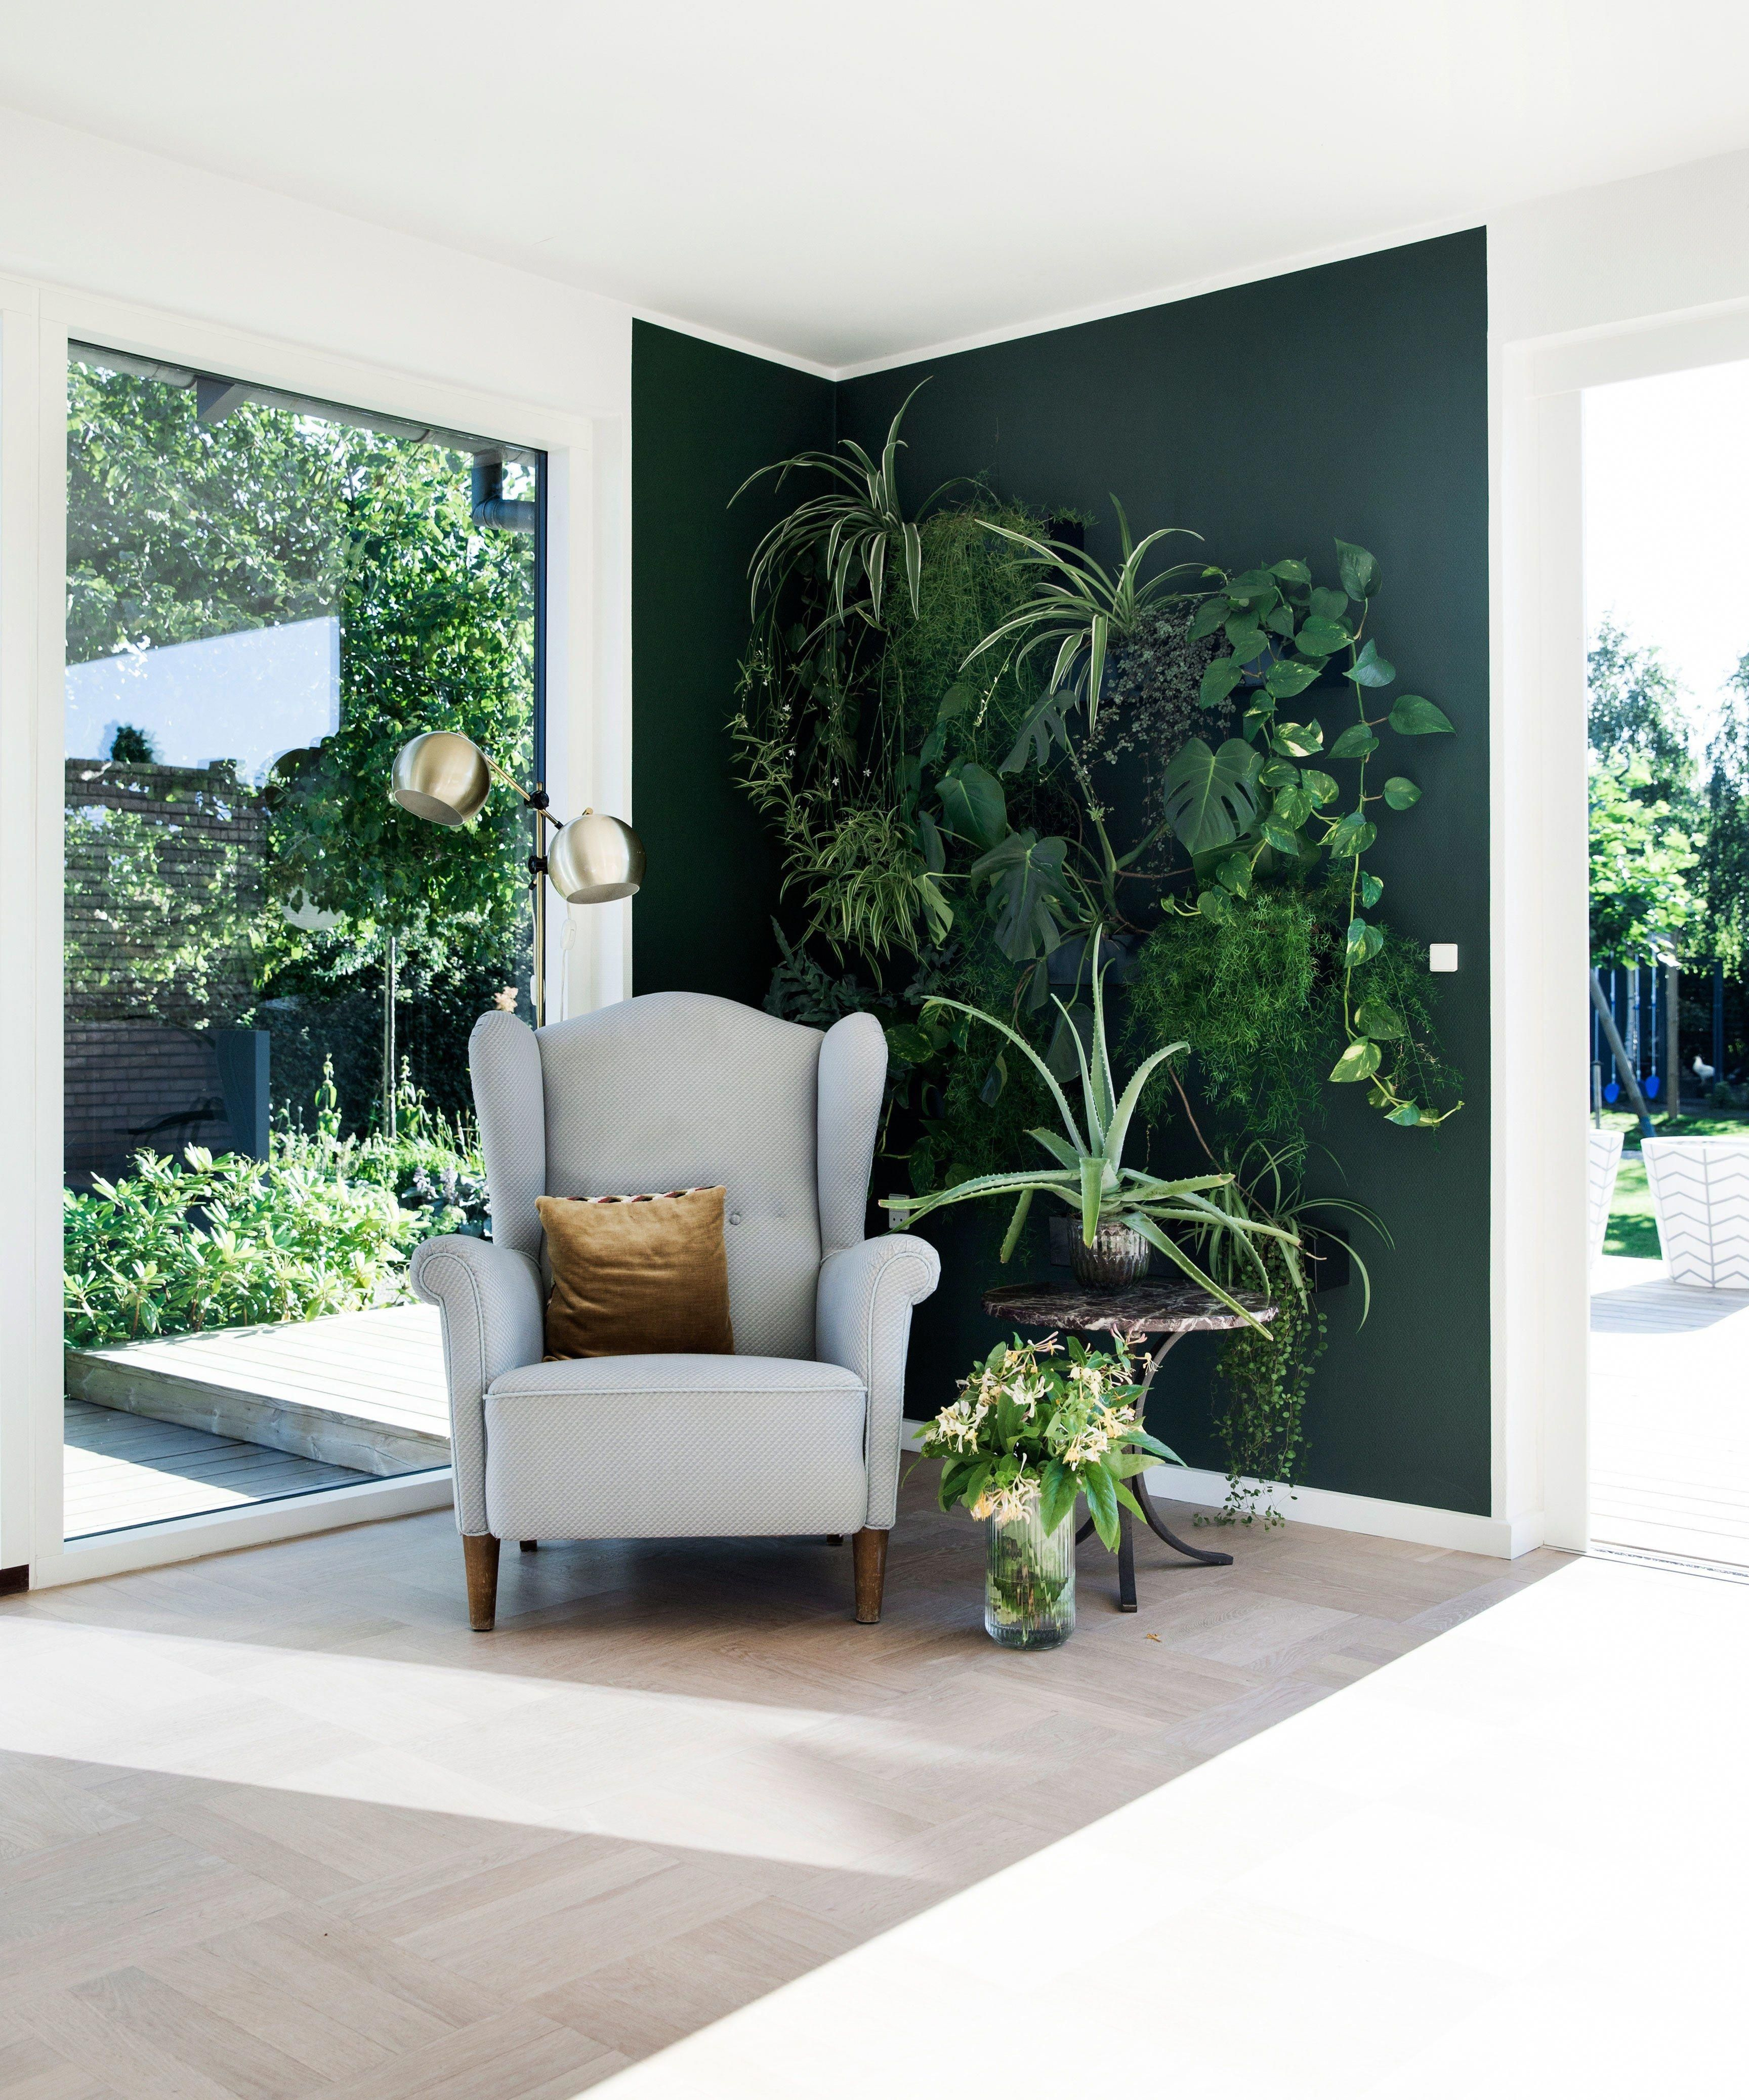 Home Design Ideas Australia:  Decorating Ideas : 5 Cool Design Trends Coming Out Of